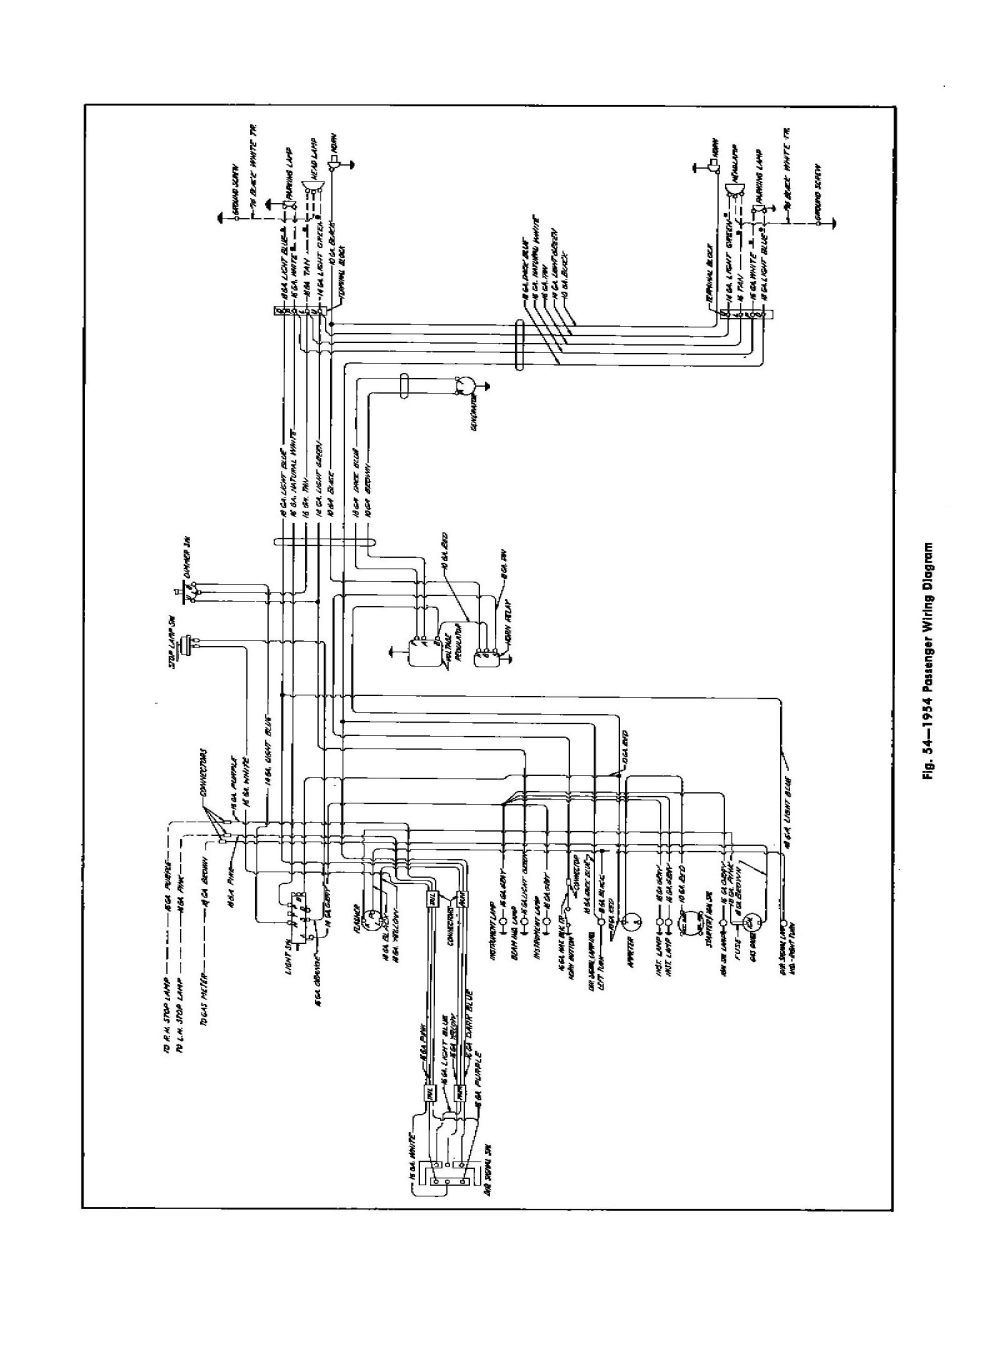 medium resolution of 54 chevy wiring diagram wiring diagram todays rh 15 6 12 1813weddingbarn com 1954 235 chevy engine parts 1954 chevy truck engine compartment